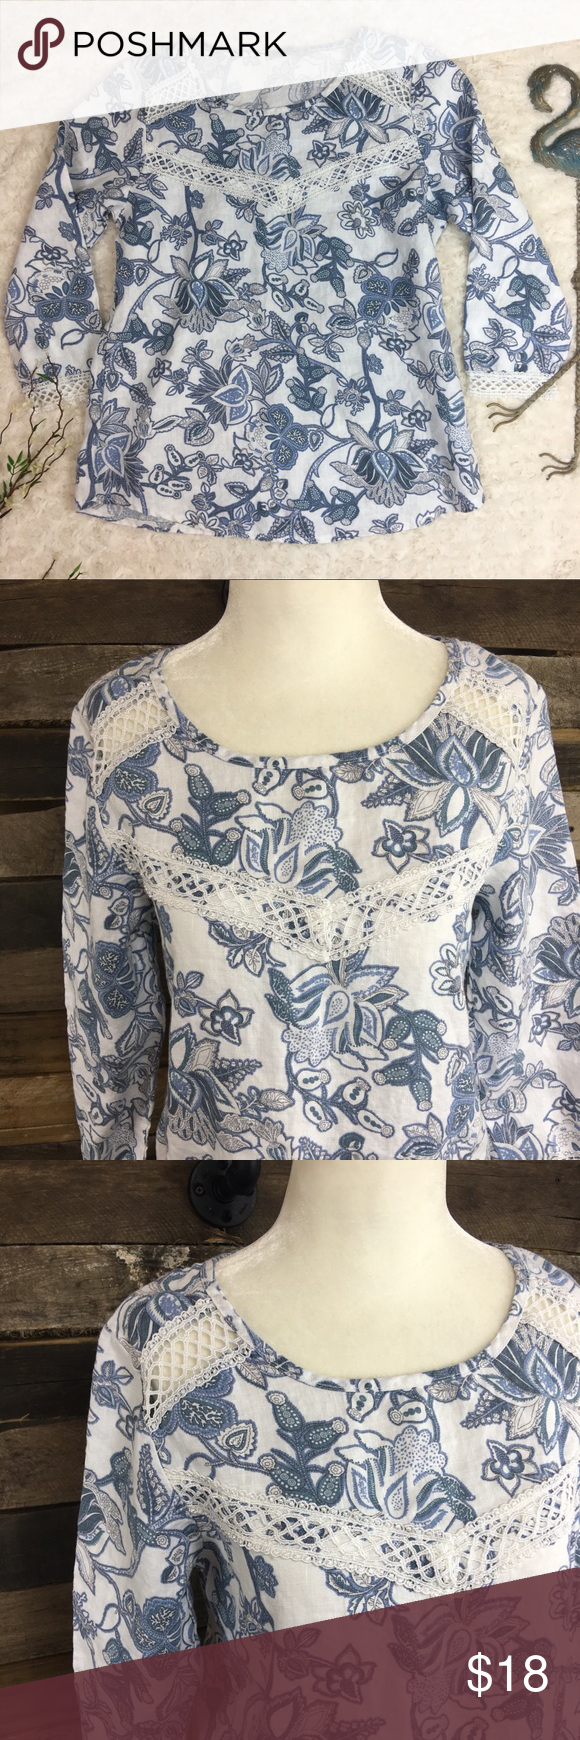 """d58d29f2f78fe3 Elena Baldi Floral Paisley Linen Top Elena Baldi Made in Italy. EUC. Size  Small. 3 4 Sleeve with crochet accent trim. Pit to pit 19"""" and Length 24""""  Elena ..."""